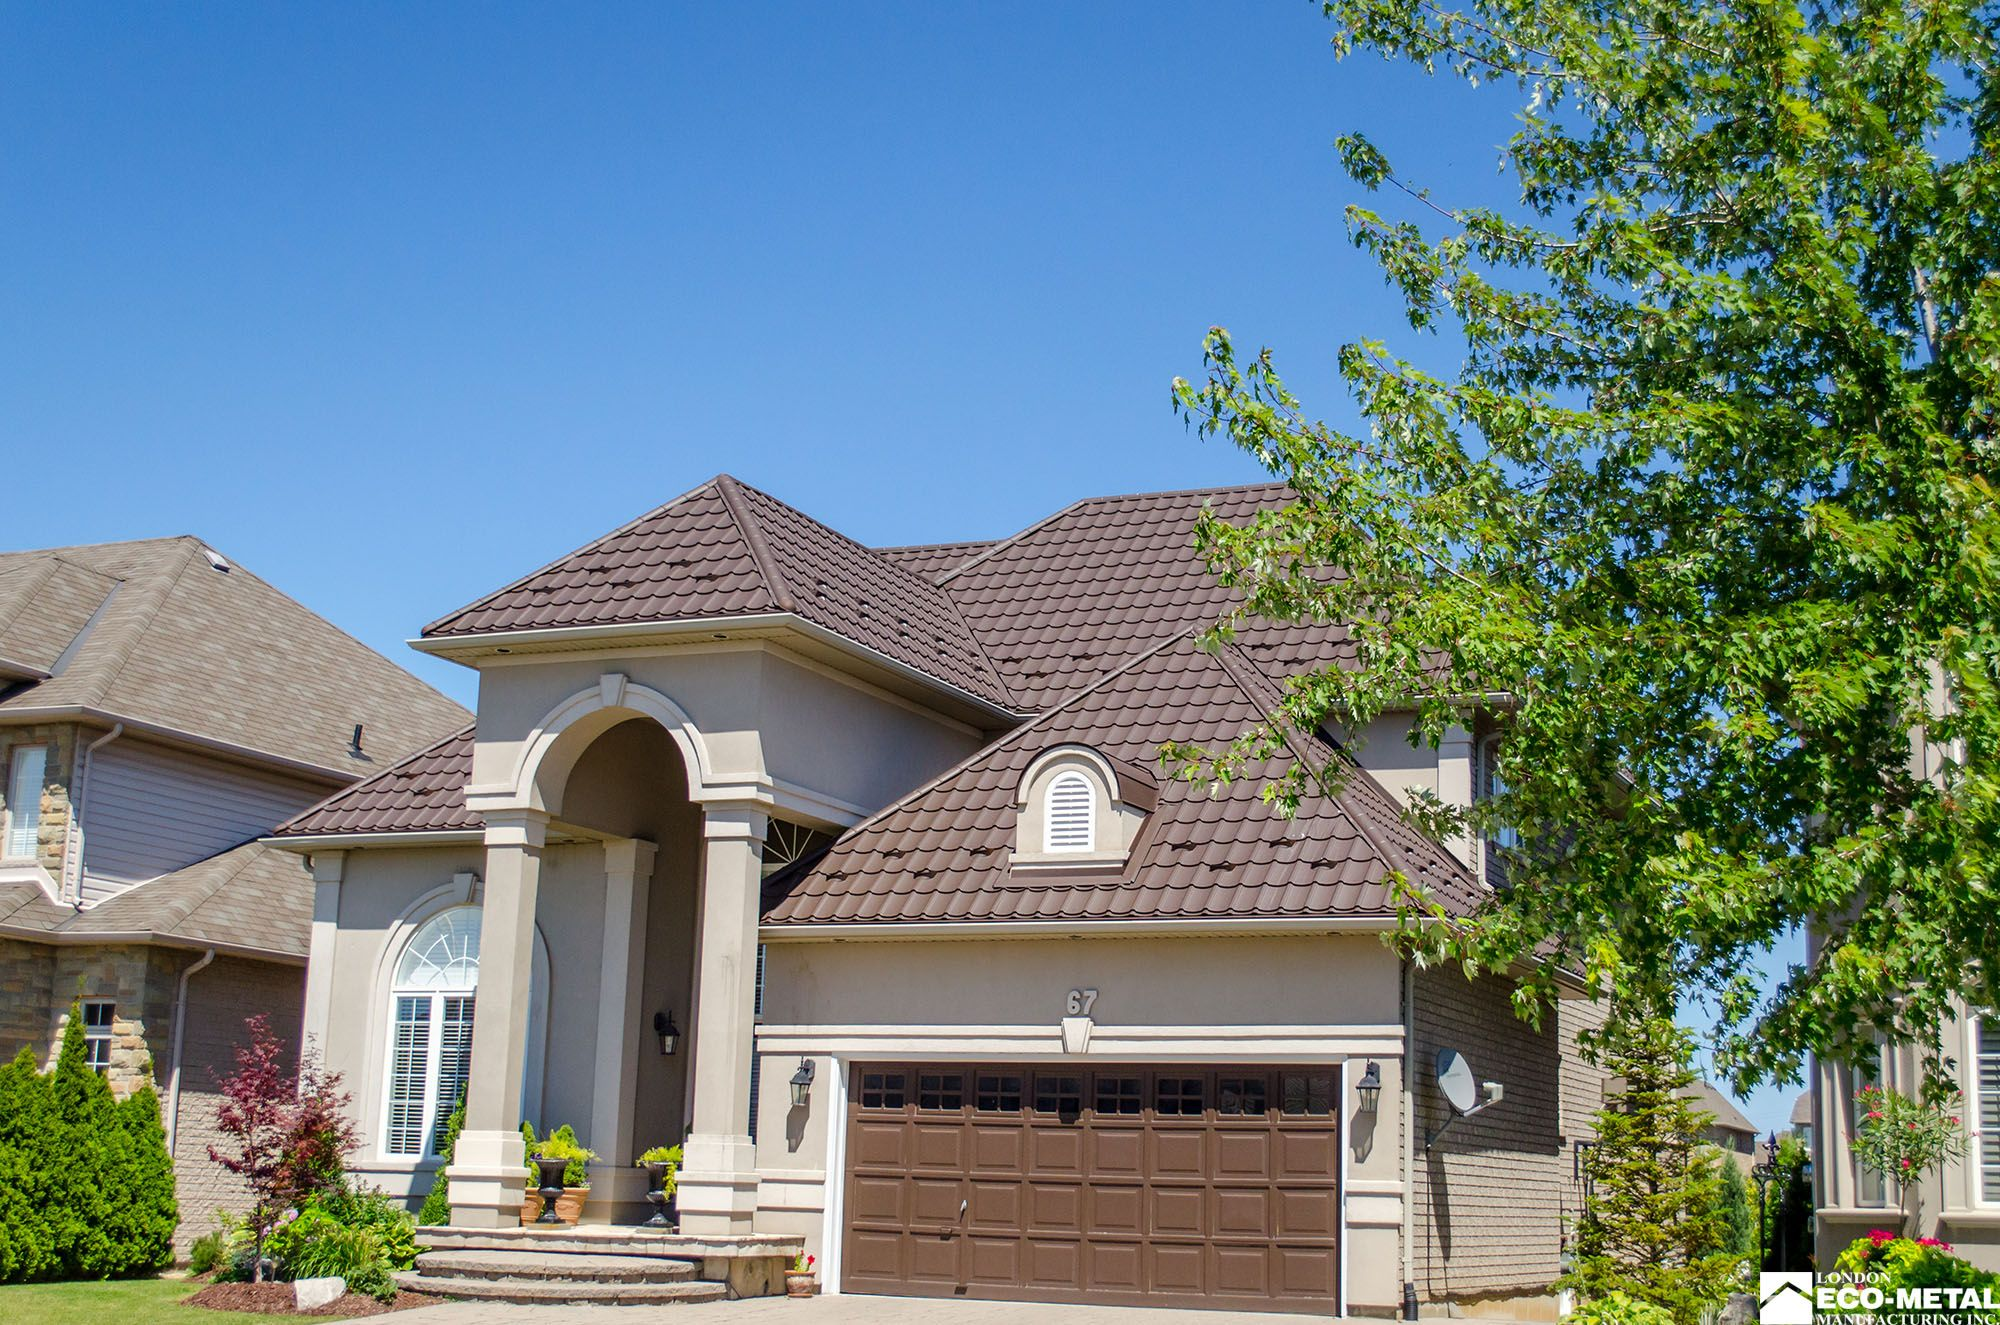 Check out this #metal #roof we did on Lowinger Ave. Ancaster, Ontario.